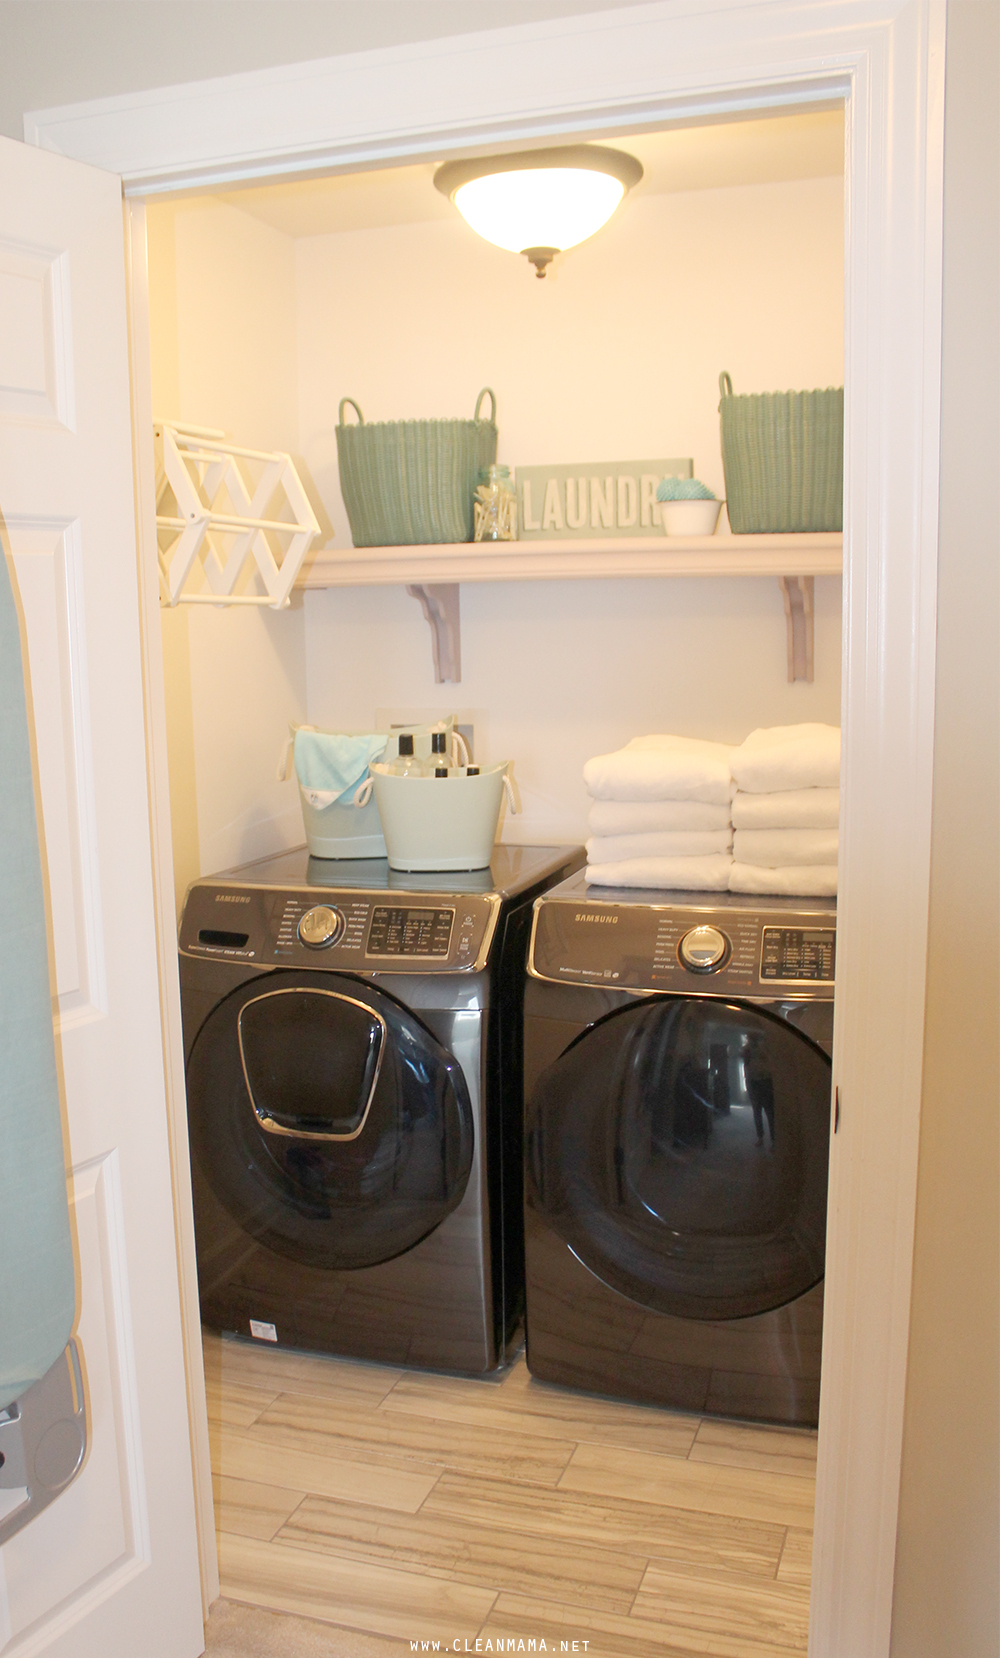 In the market for a new washer dryer clean mama samsung washer dryer clean mama biocorpaavc Images